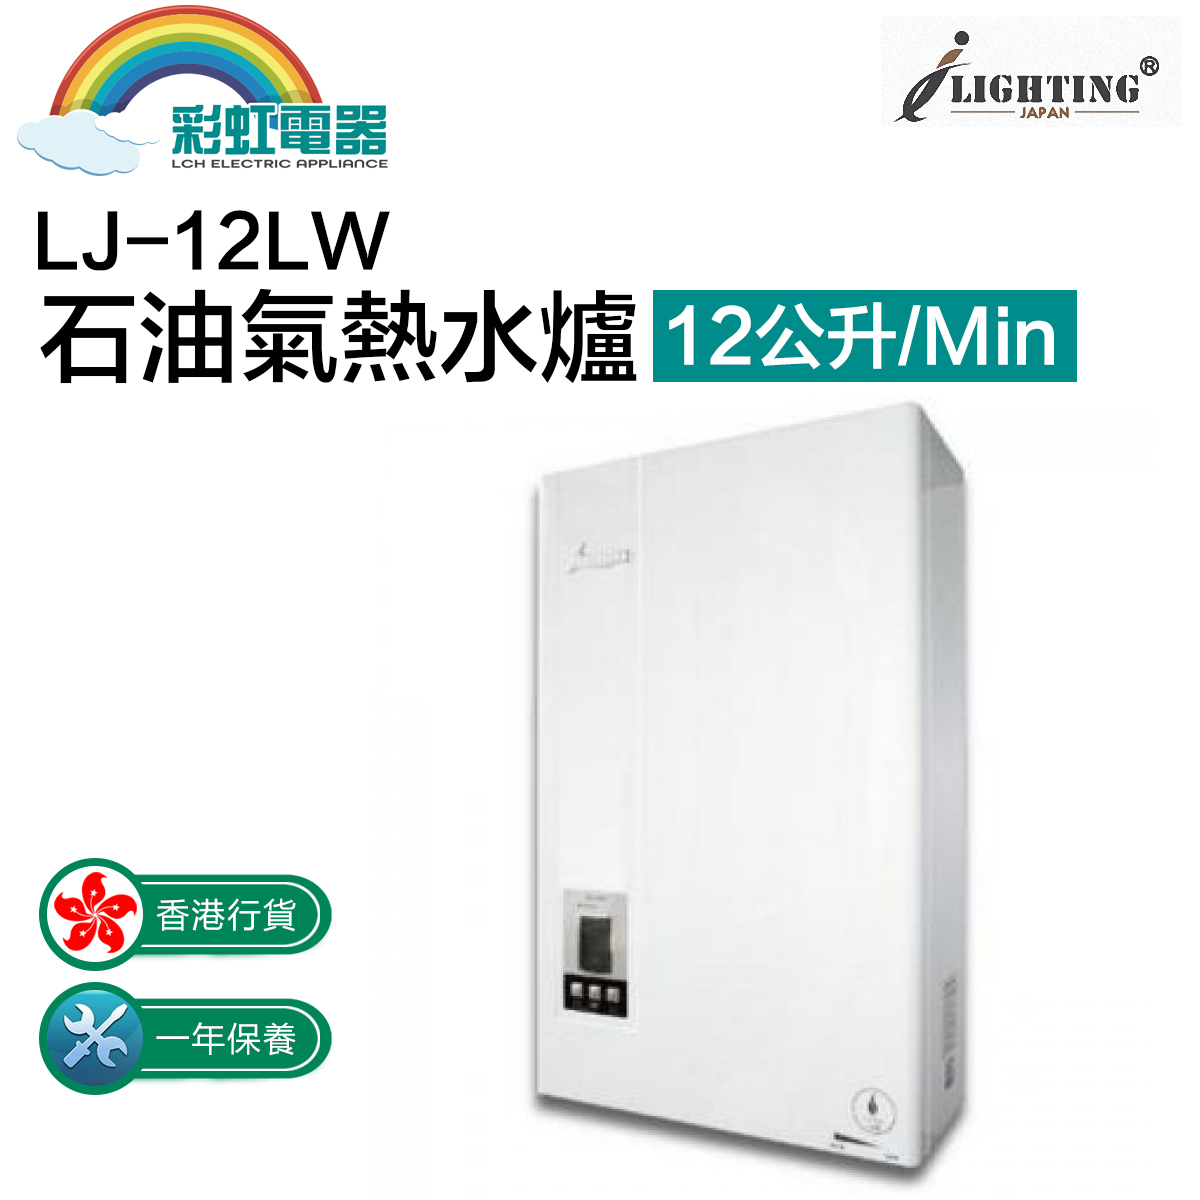 LJ-12LW petroleum gas water heater 12.0 liters / minute